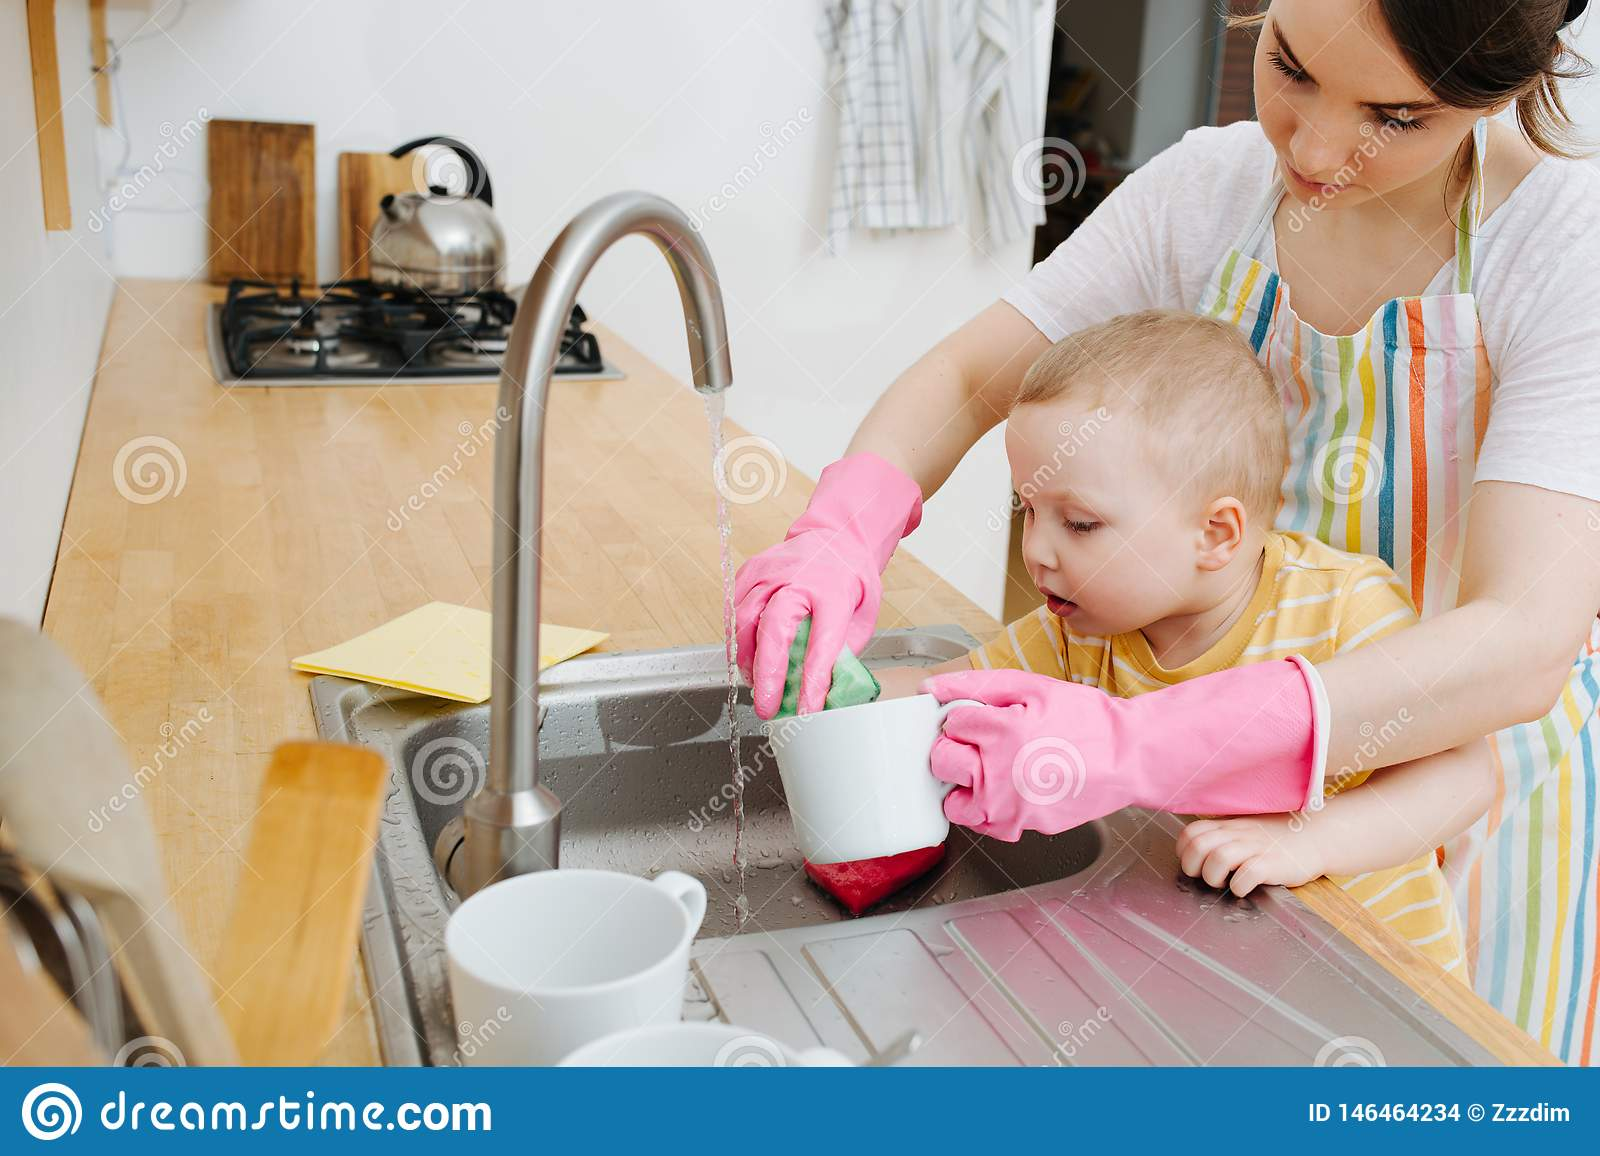 Young happy woman in a kitchen is washing cups and dishes. Her little son helps